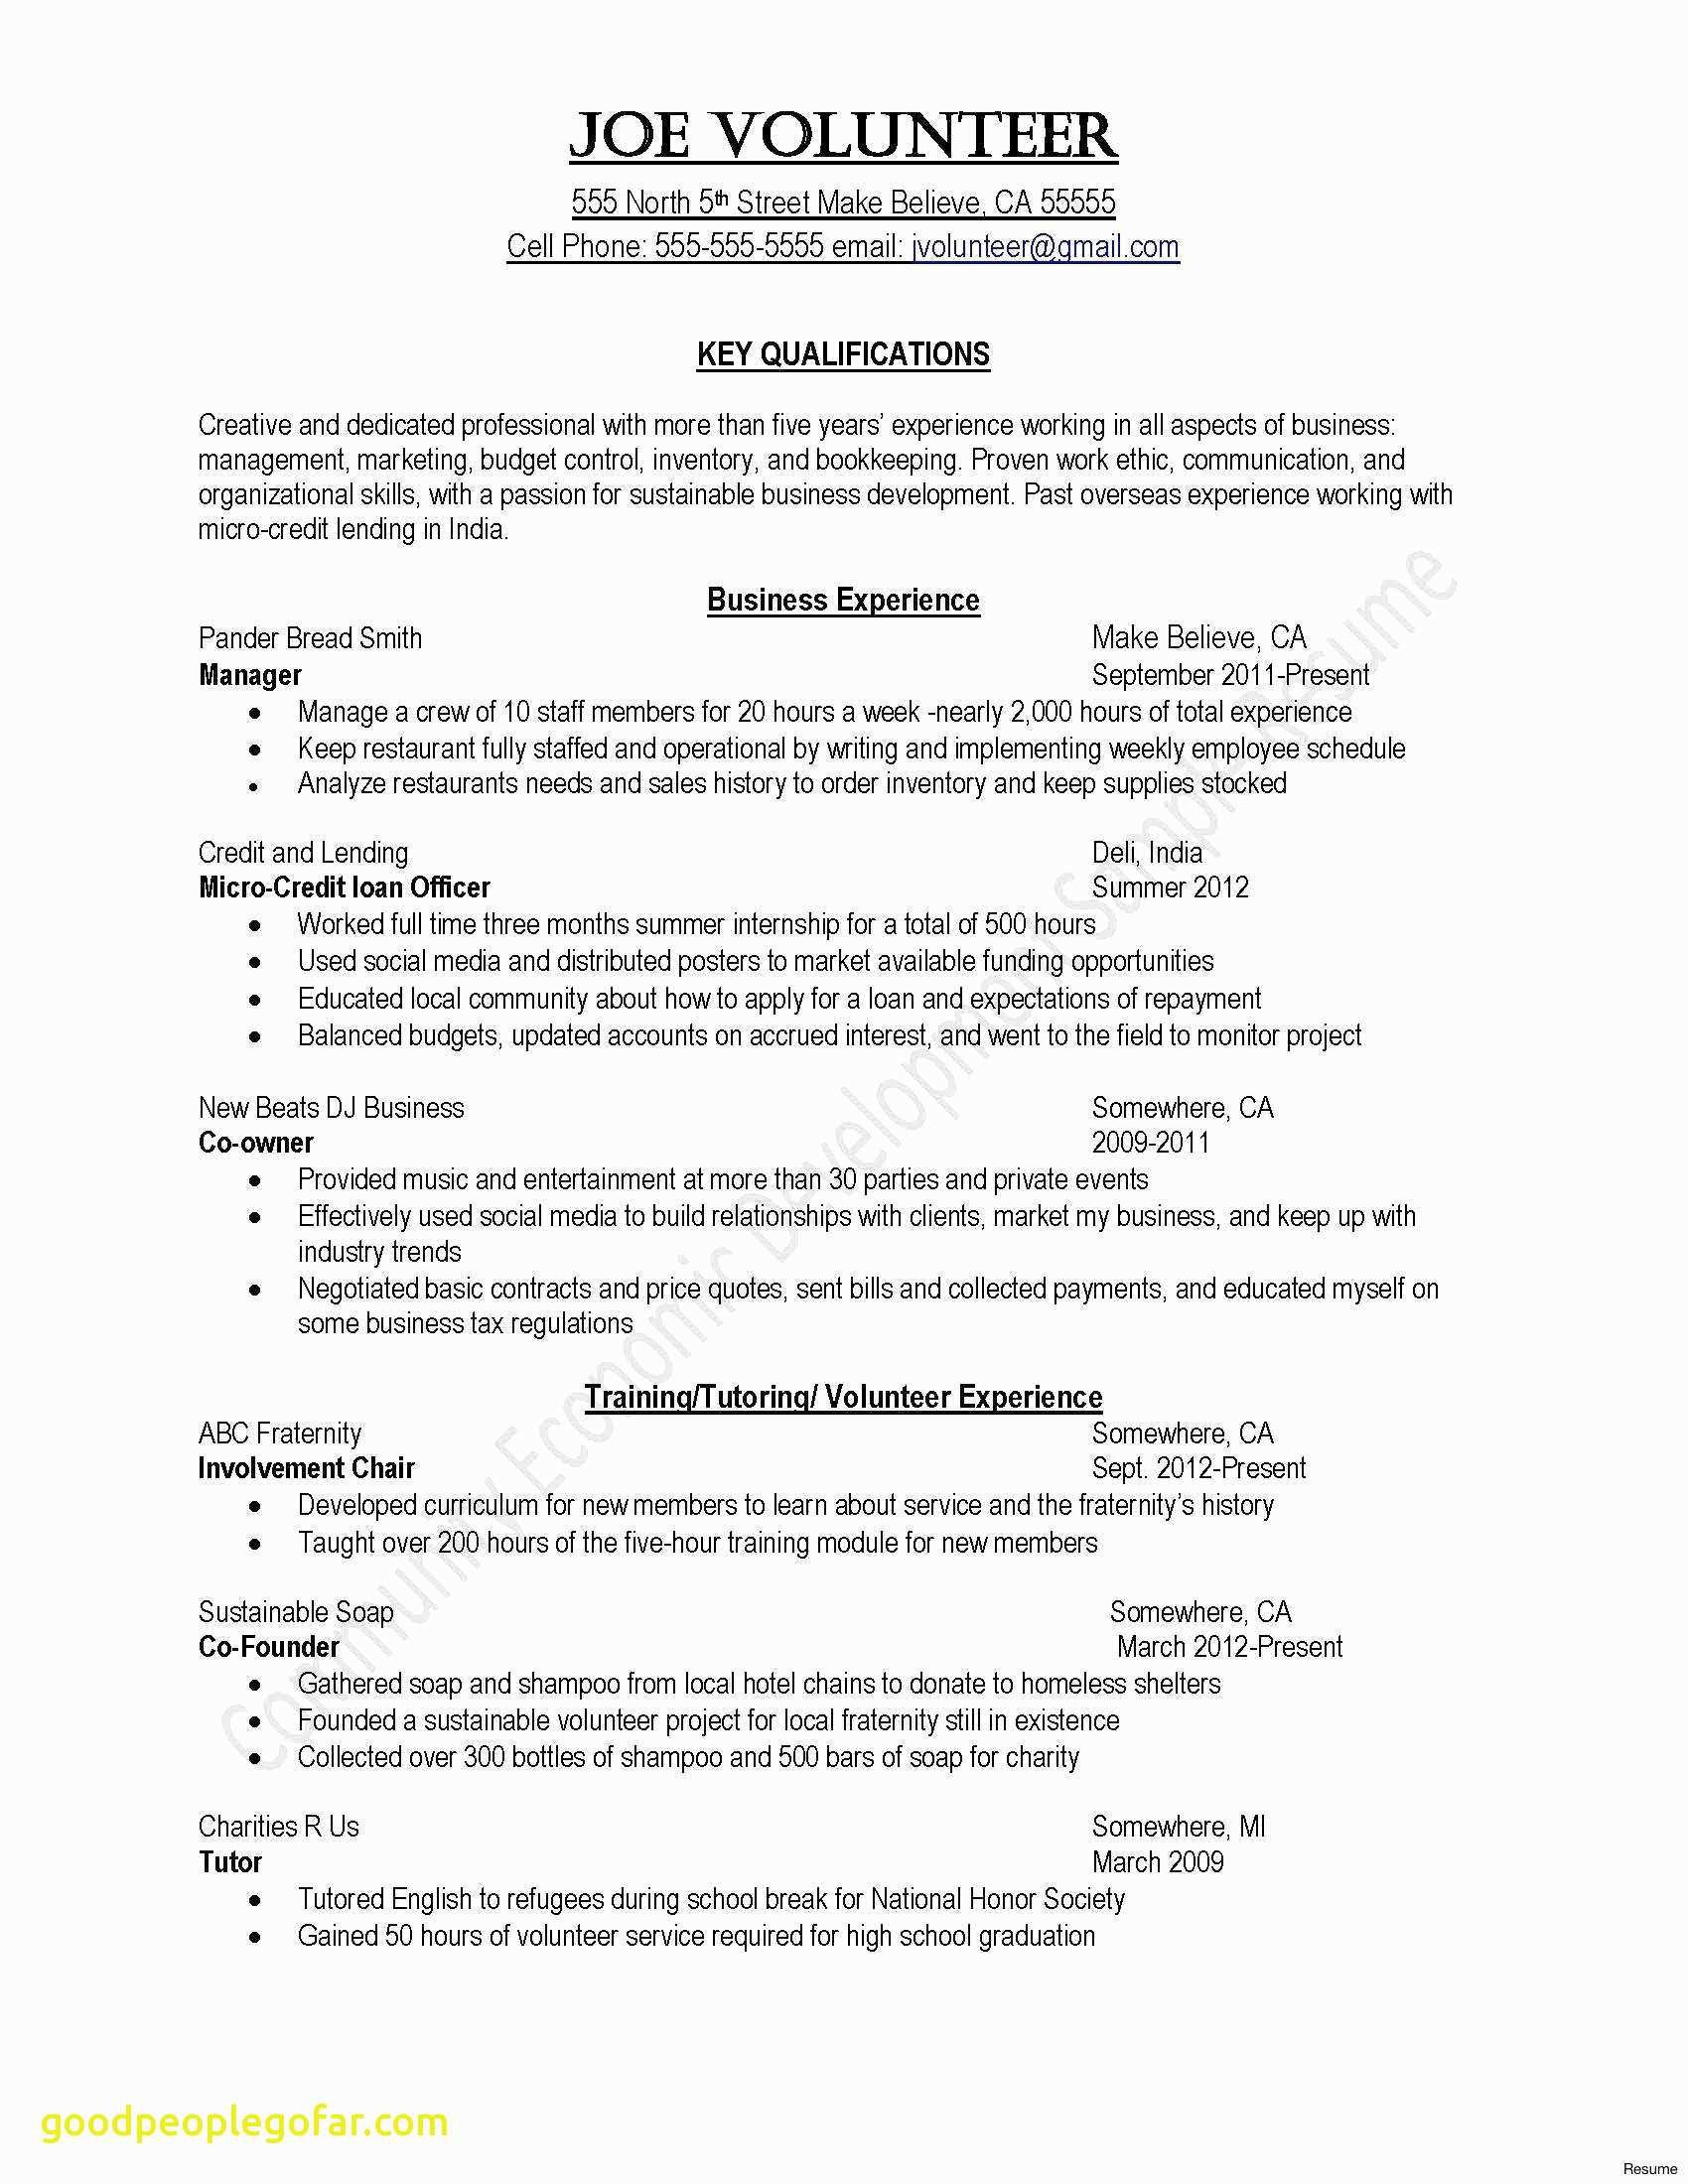 Medical Biller Resume Template - Medical Billing Job Description for Resume Sample Pdf Plumbers Job